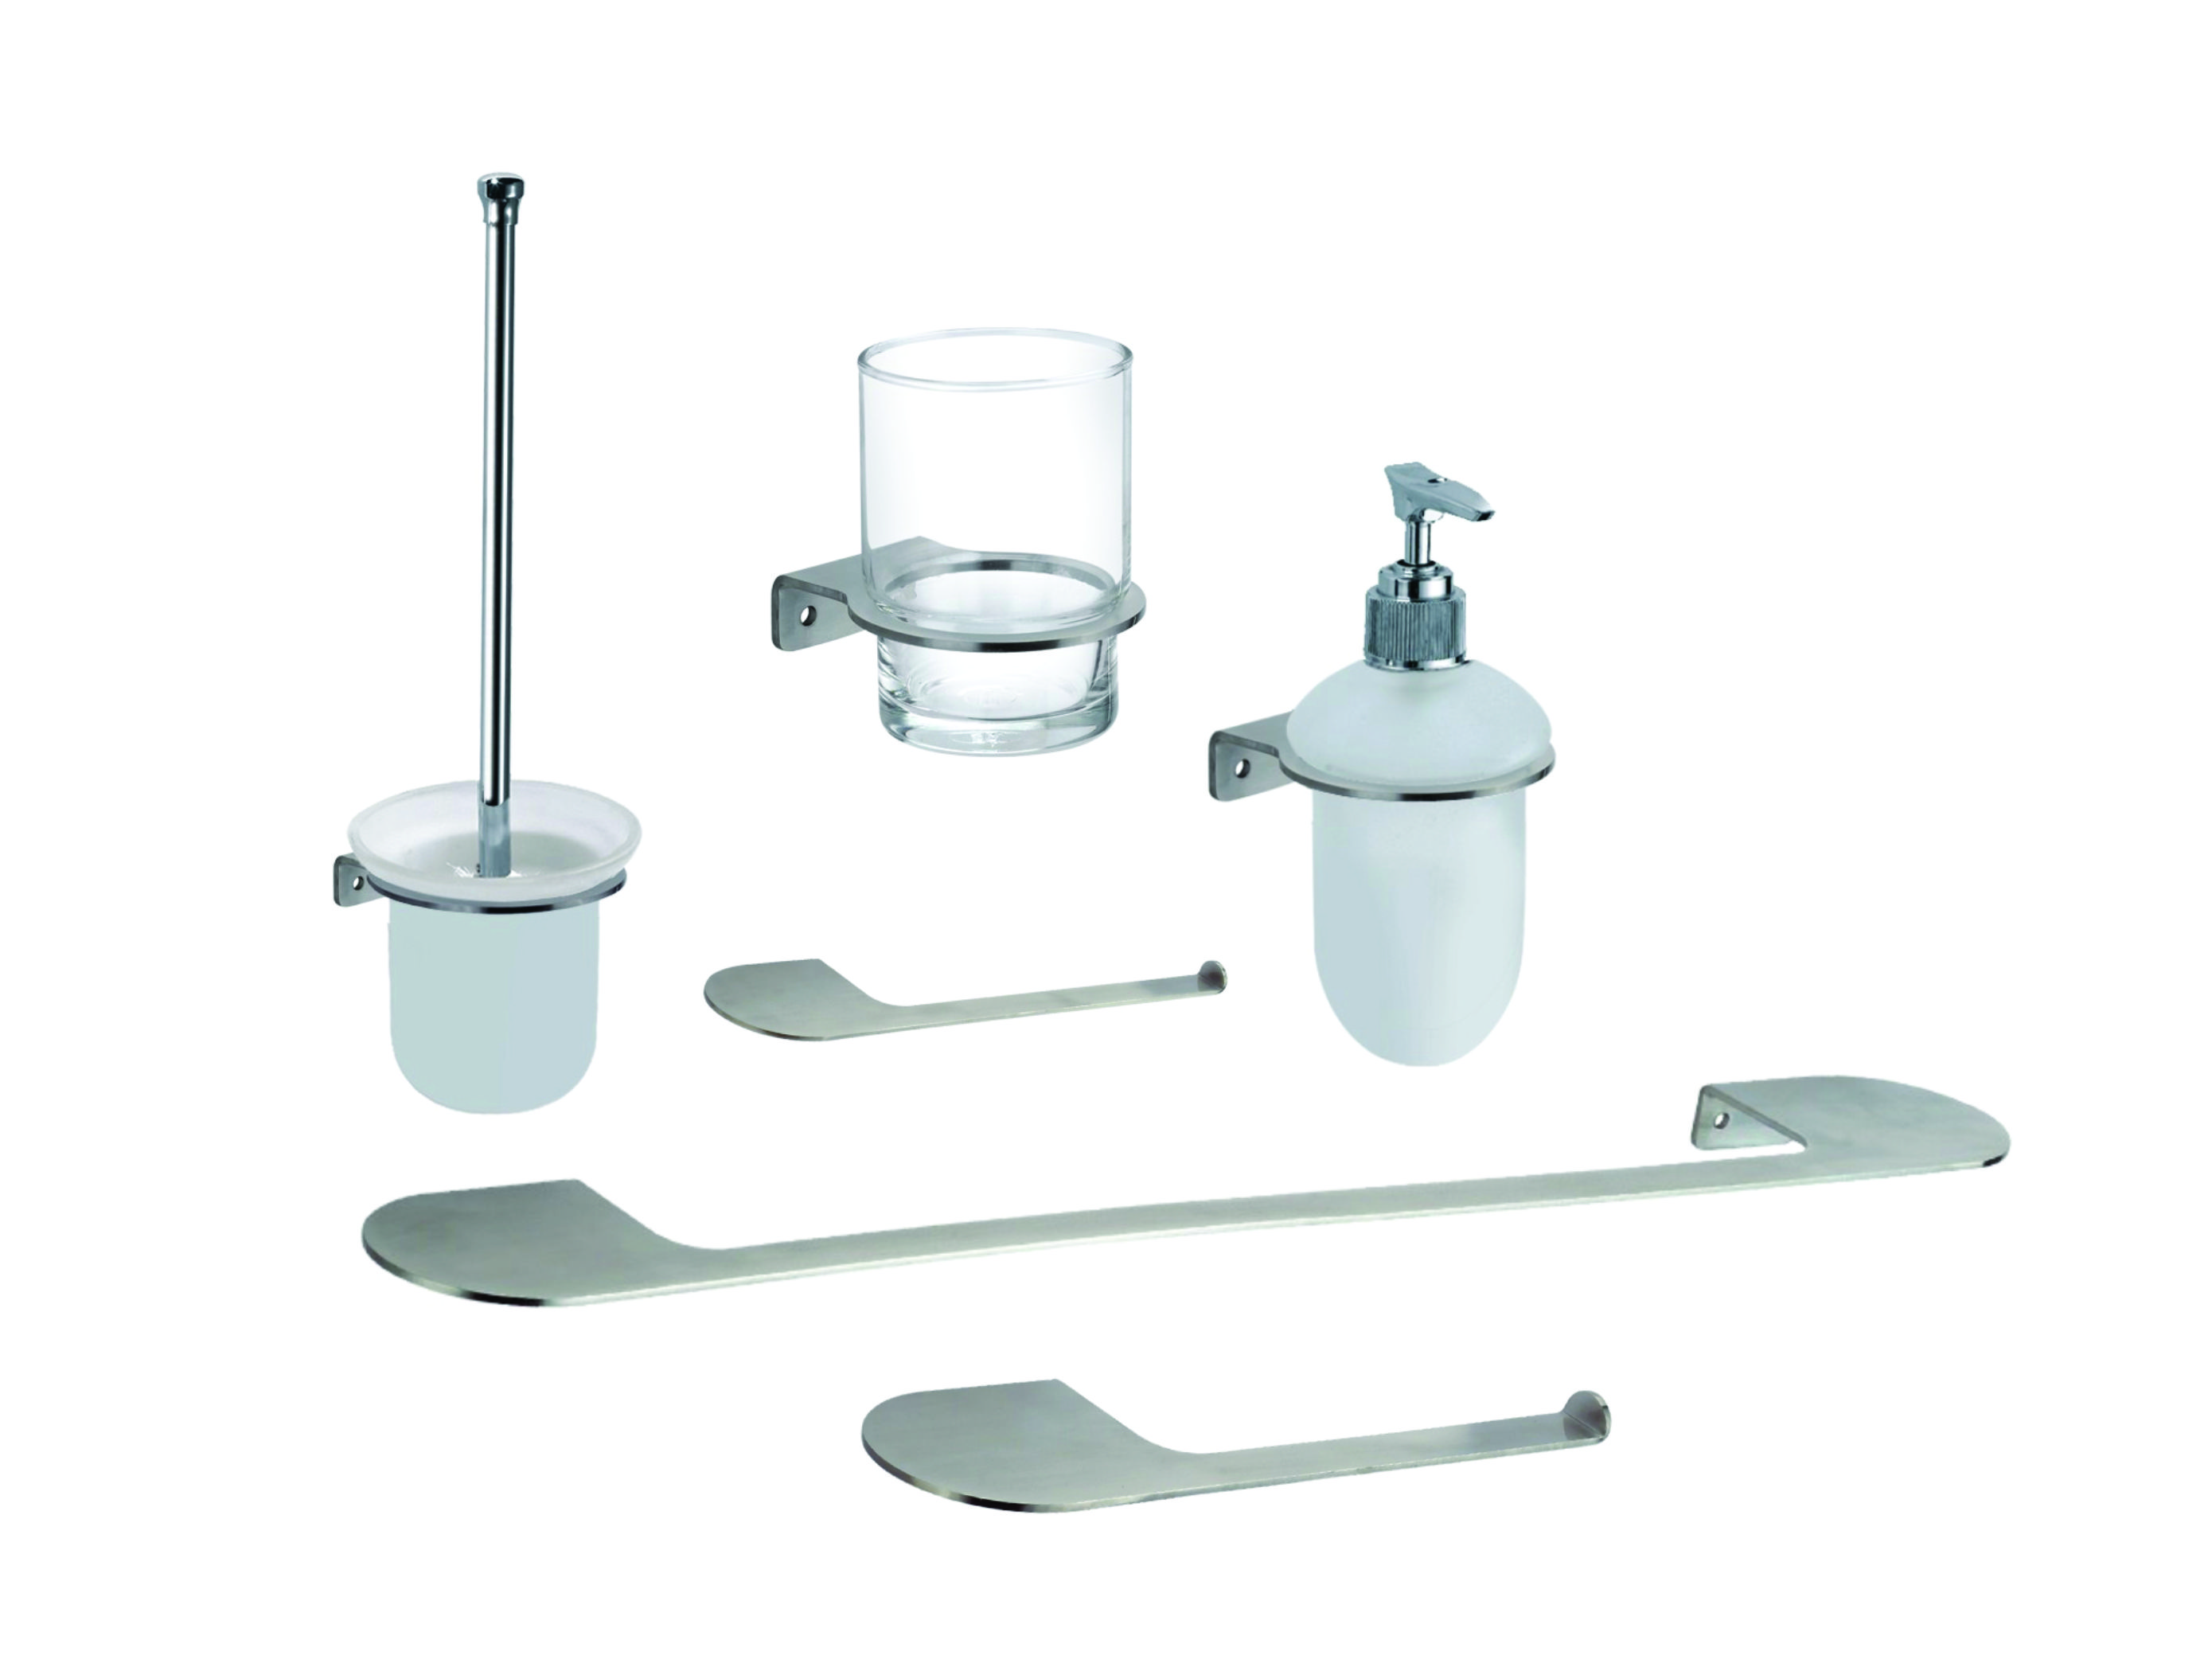 Bathroom Accessories Online Loft Complete Bathroom Accessories Serie Kit Made With Brushed Stainless Steel From Inoxia Be Part Of The X